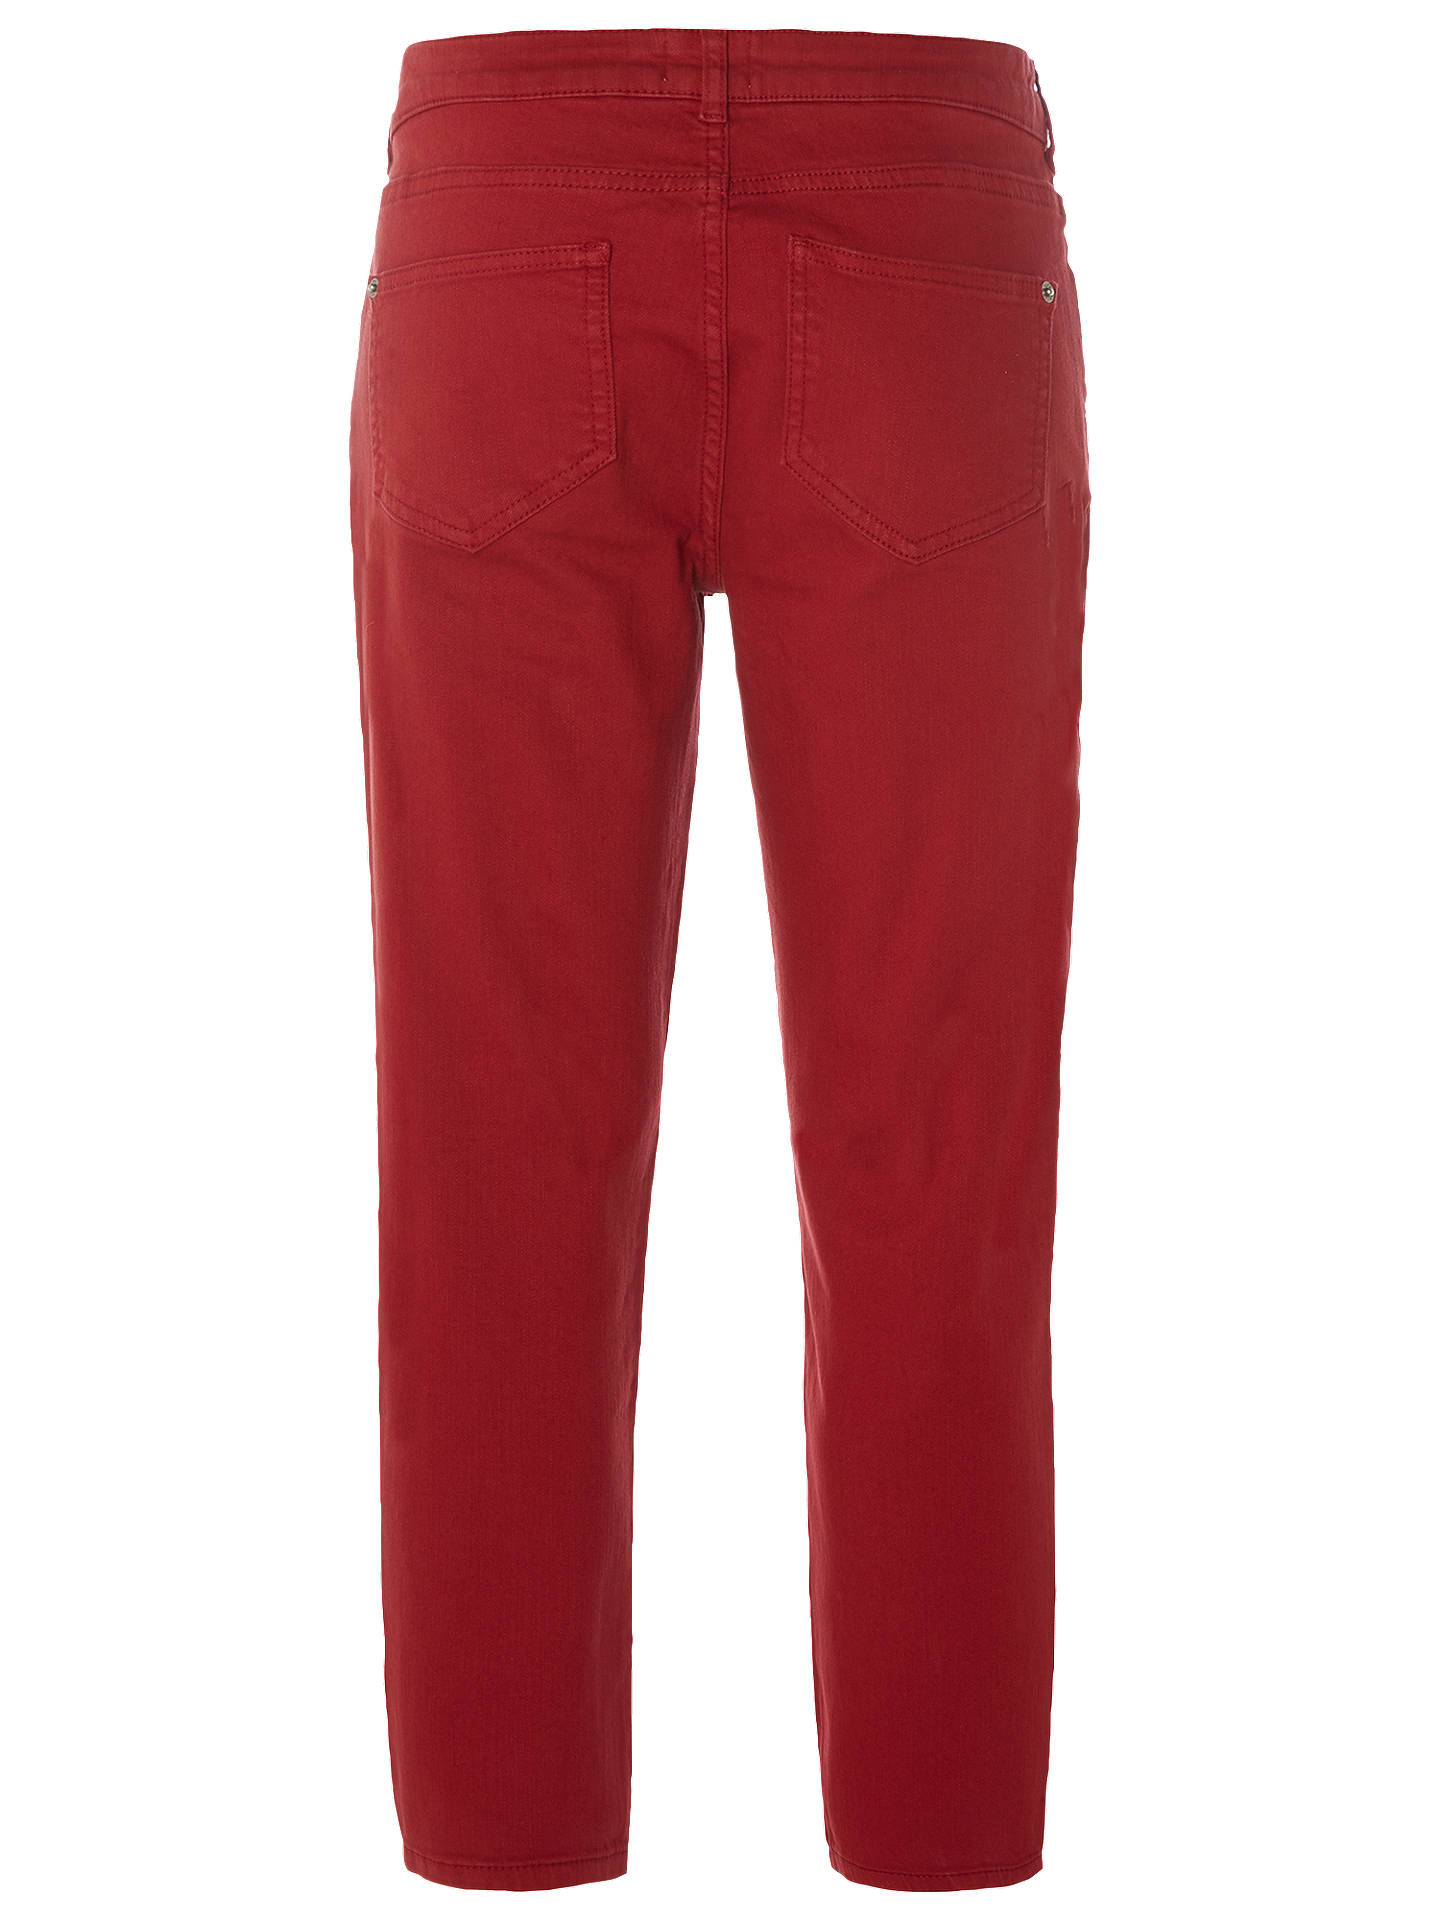 BuyWhite Stuff Sally Straight Crop Jeans, Rust, 6 Online at johnlewis.com